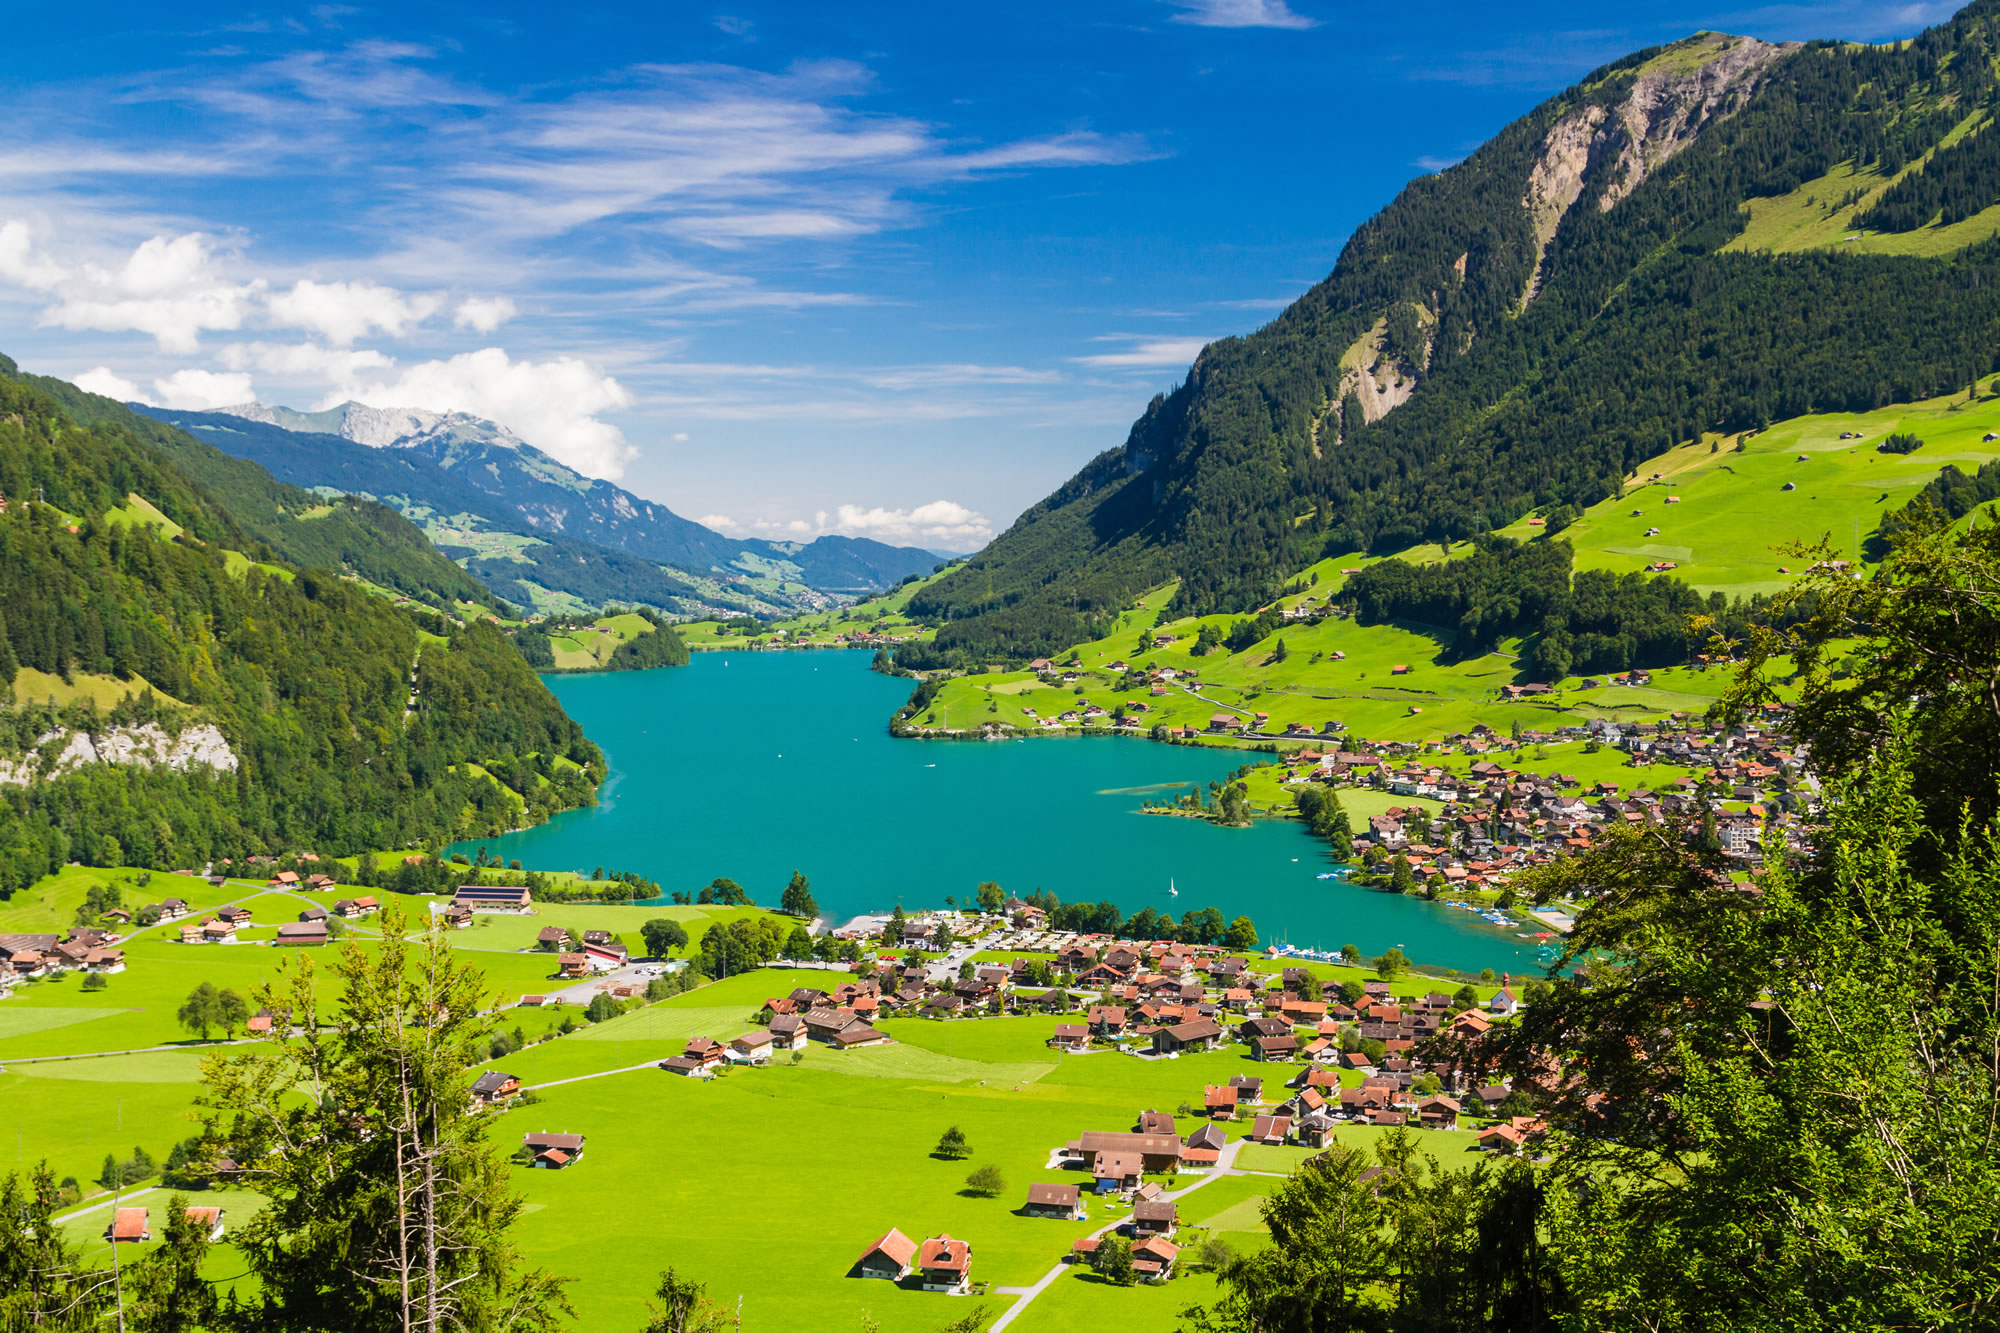 Lake Lungern Valley, Switzerland